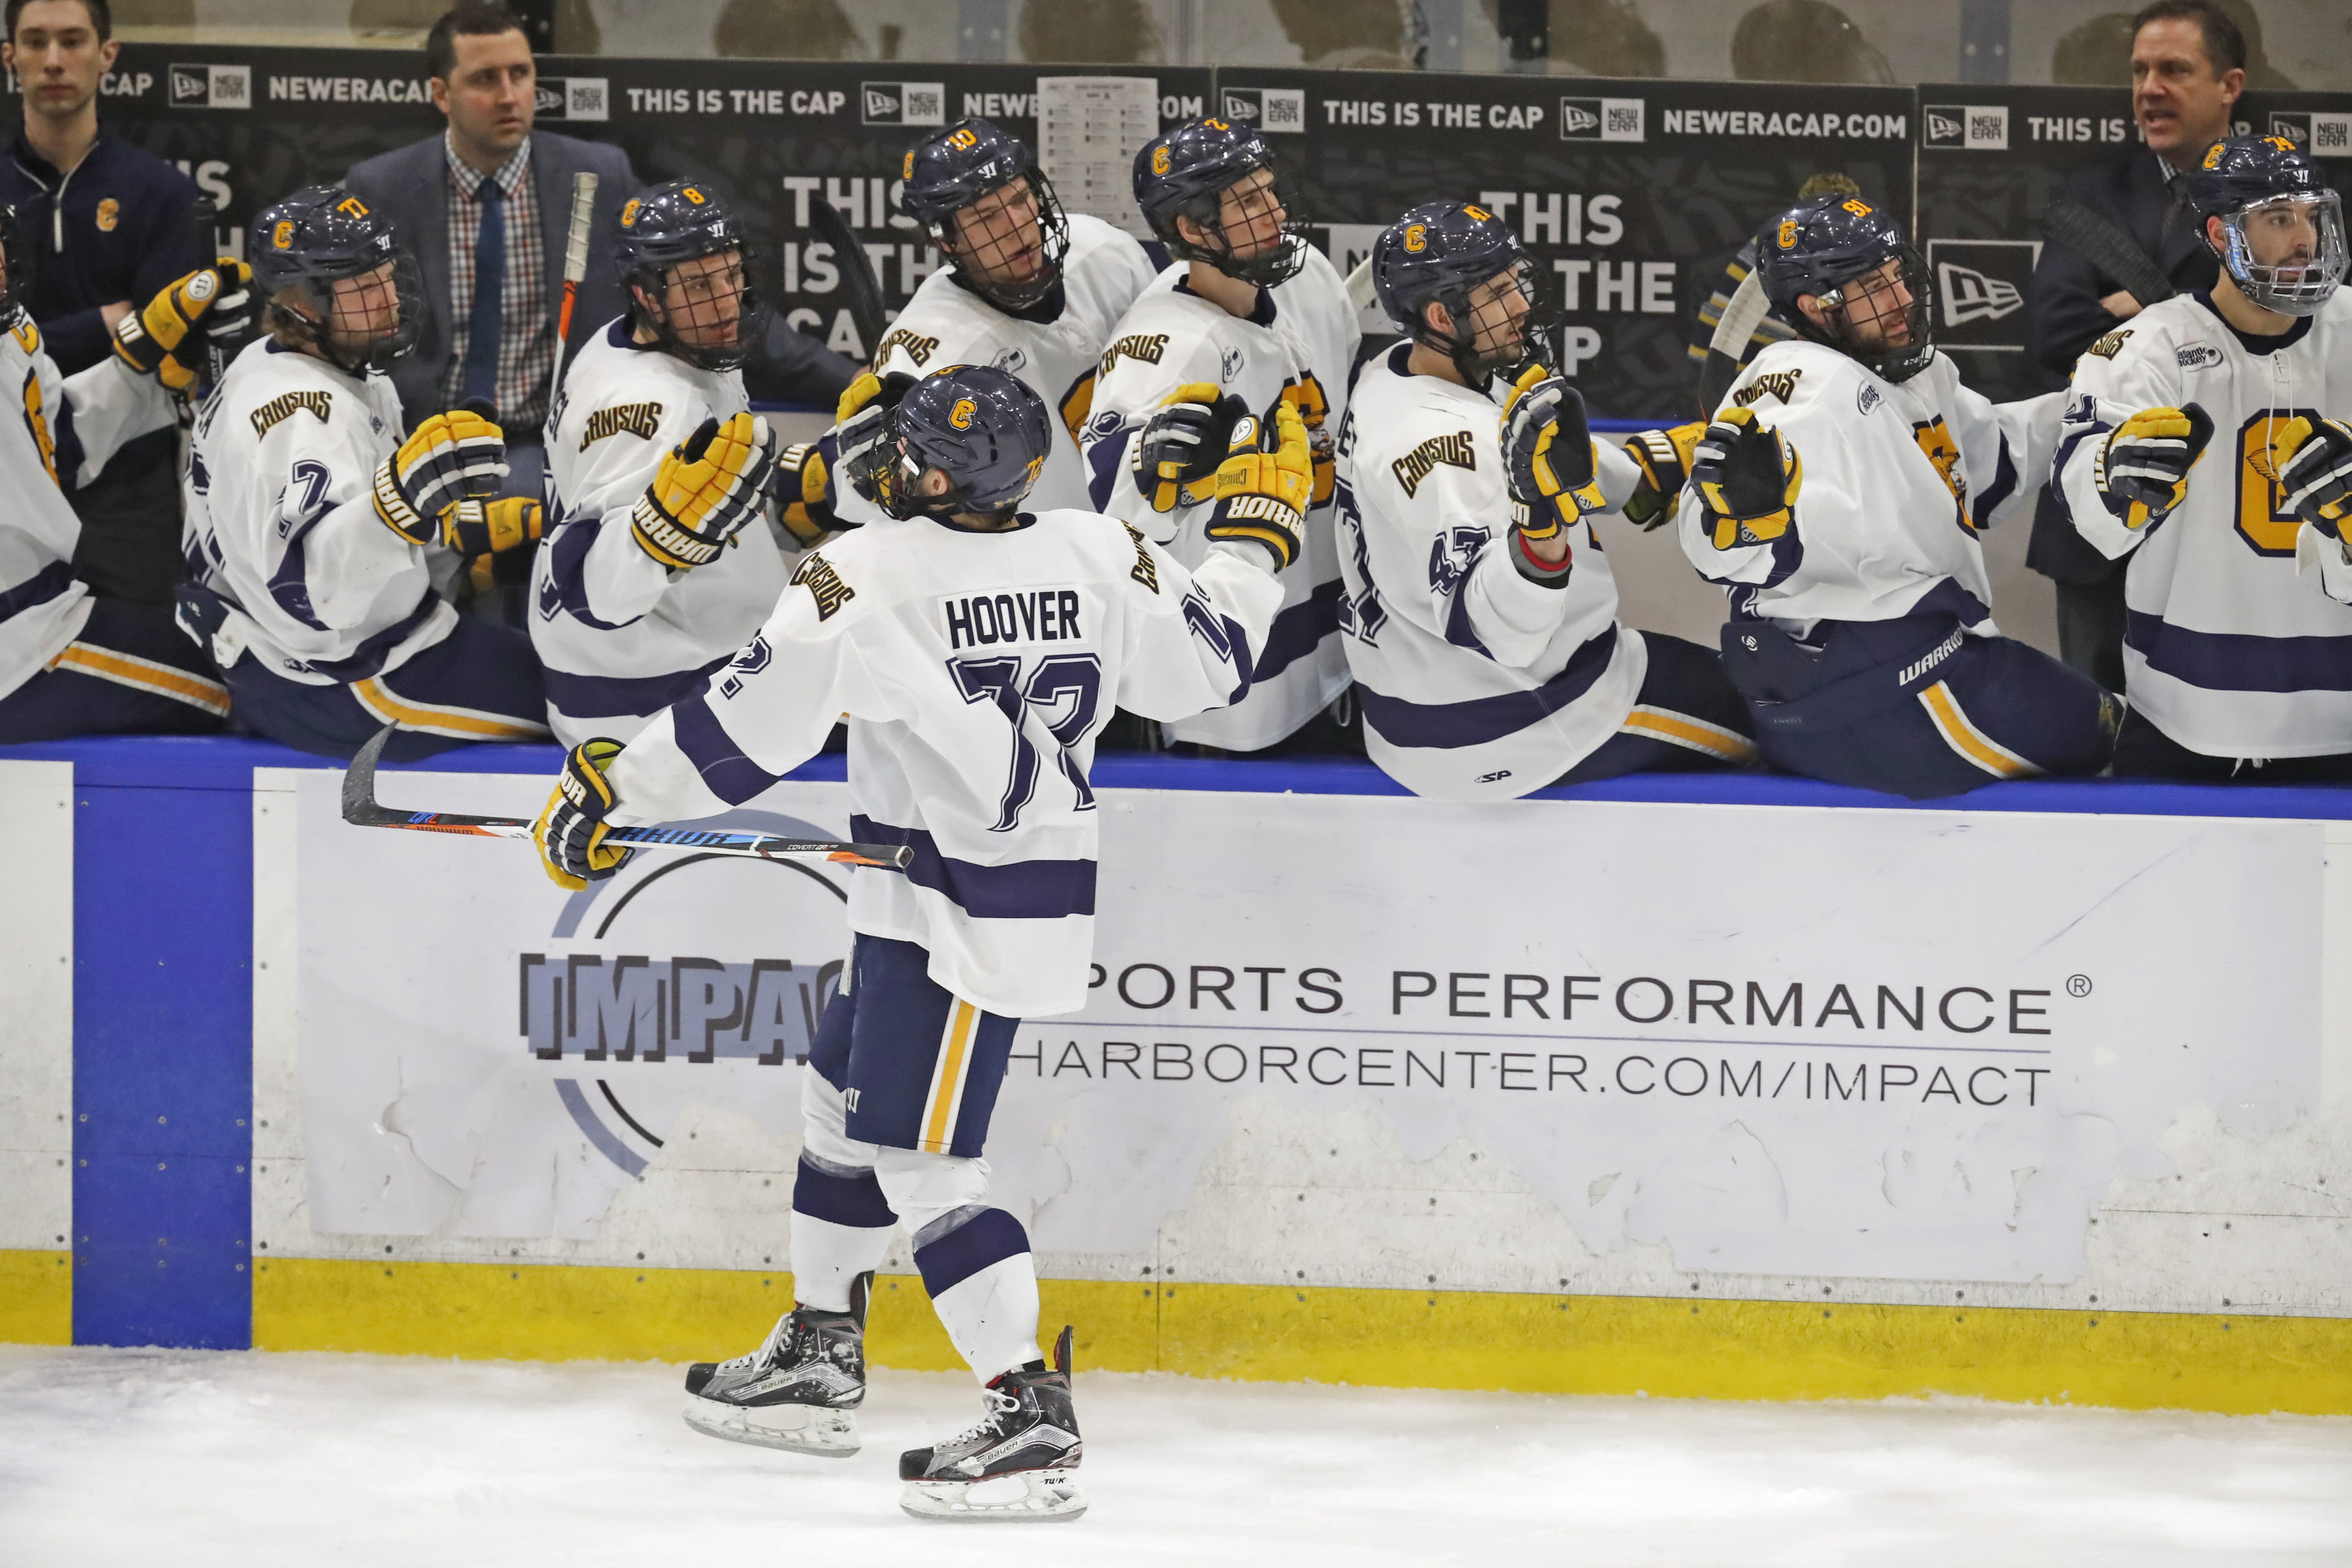 Canisius' Matt Hoover celebrates his first-period goal with the bench against Niagara. (Harry Scull Jr./Buffalo News)